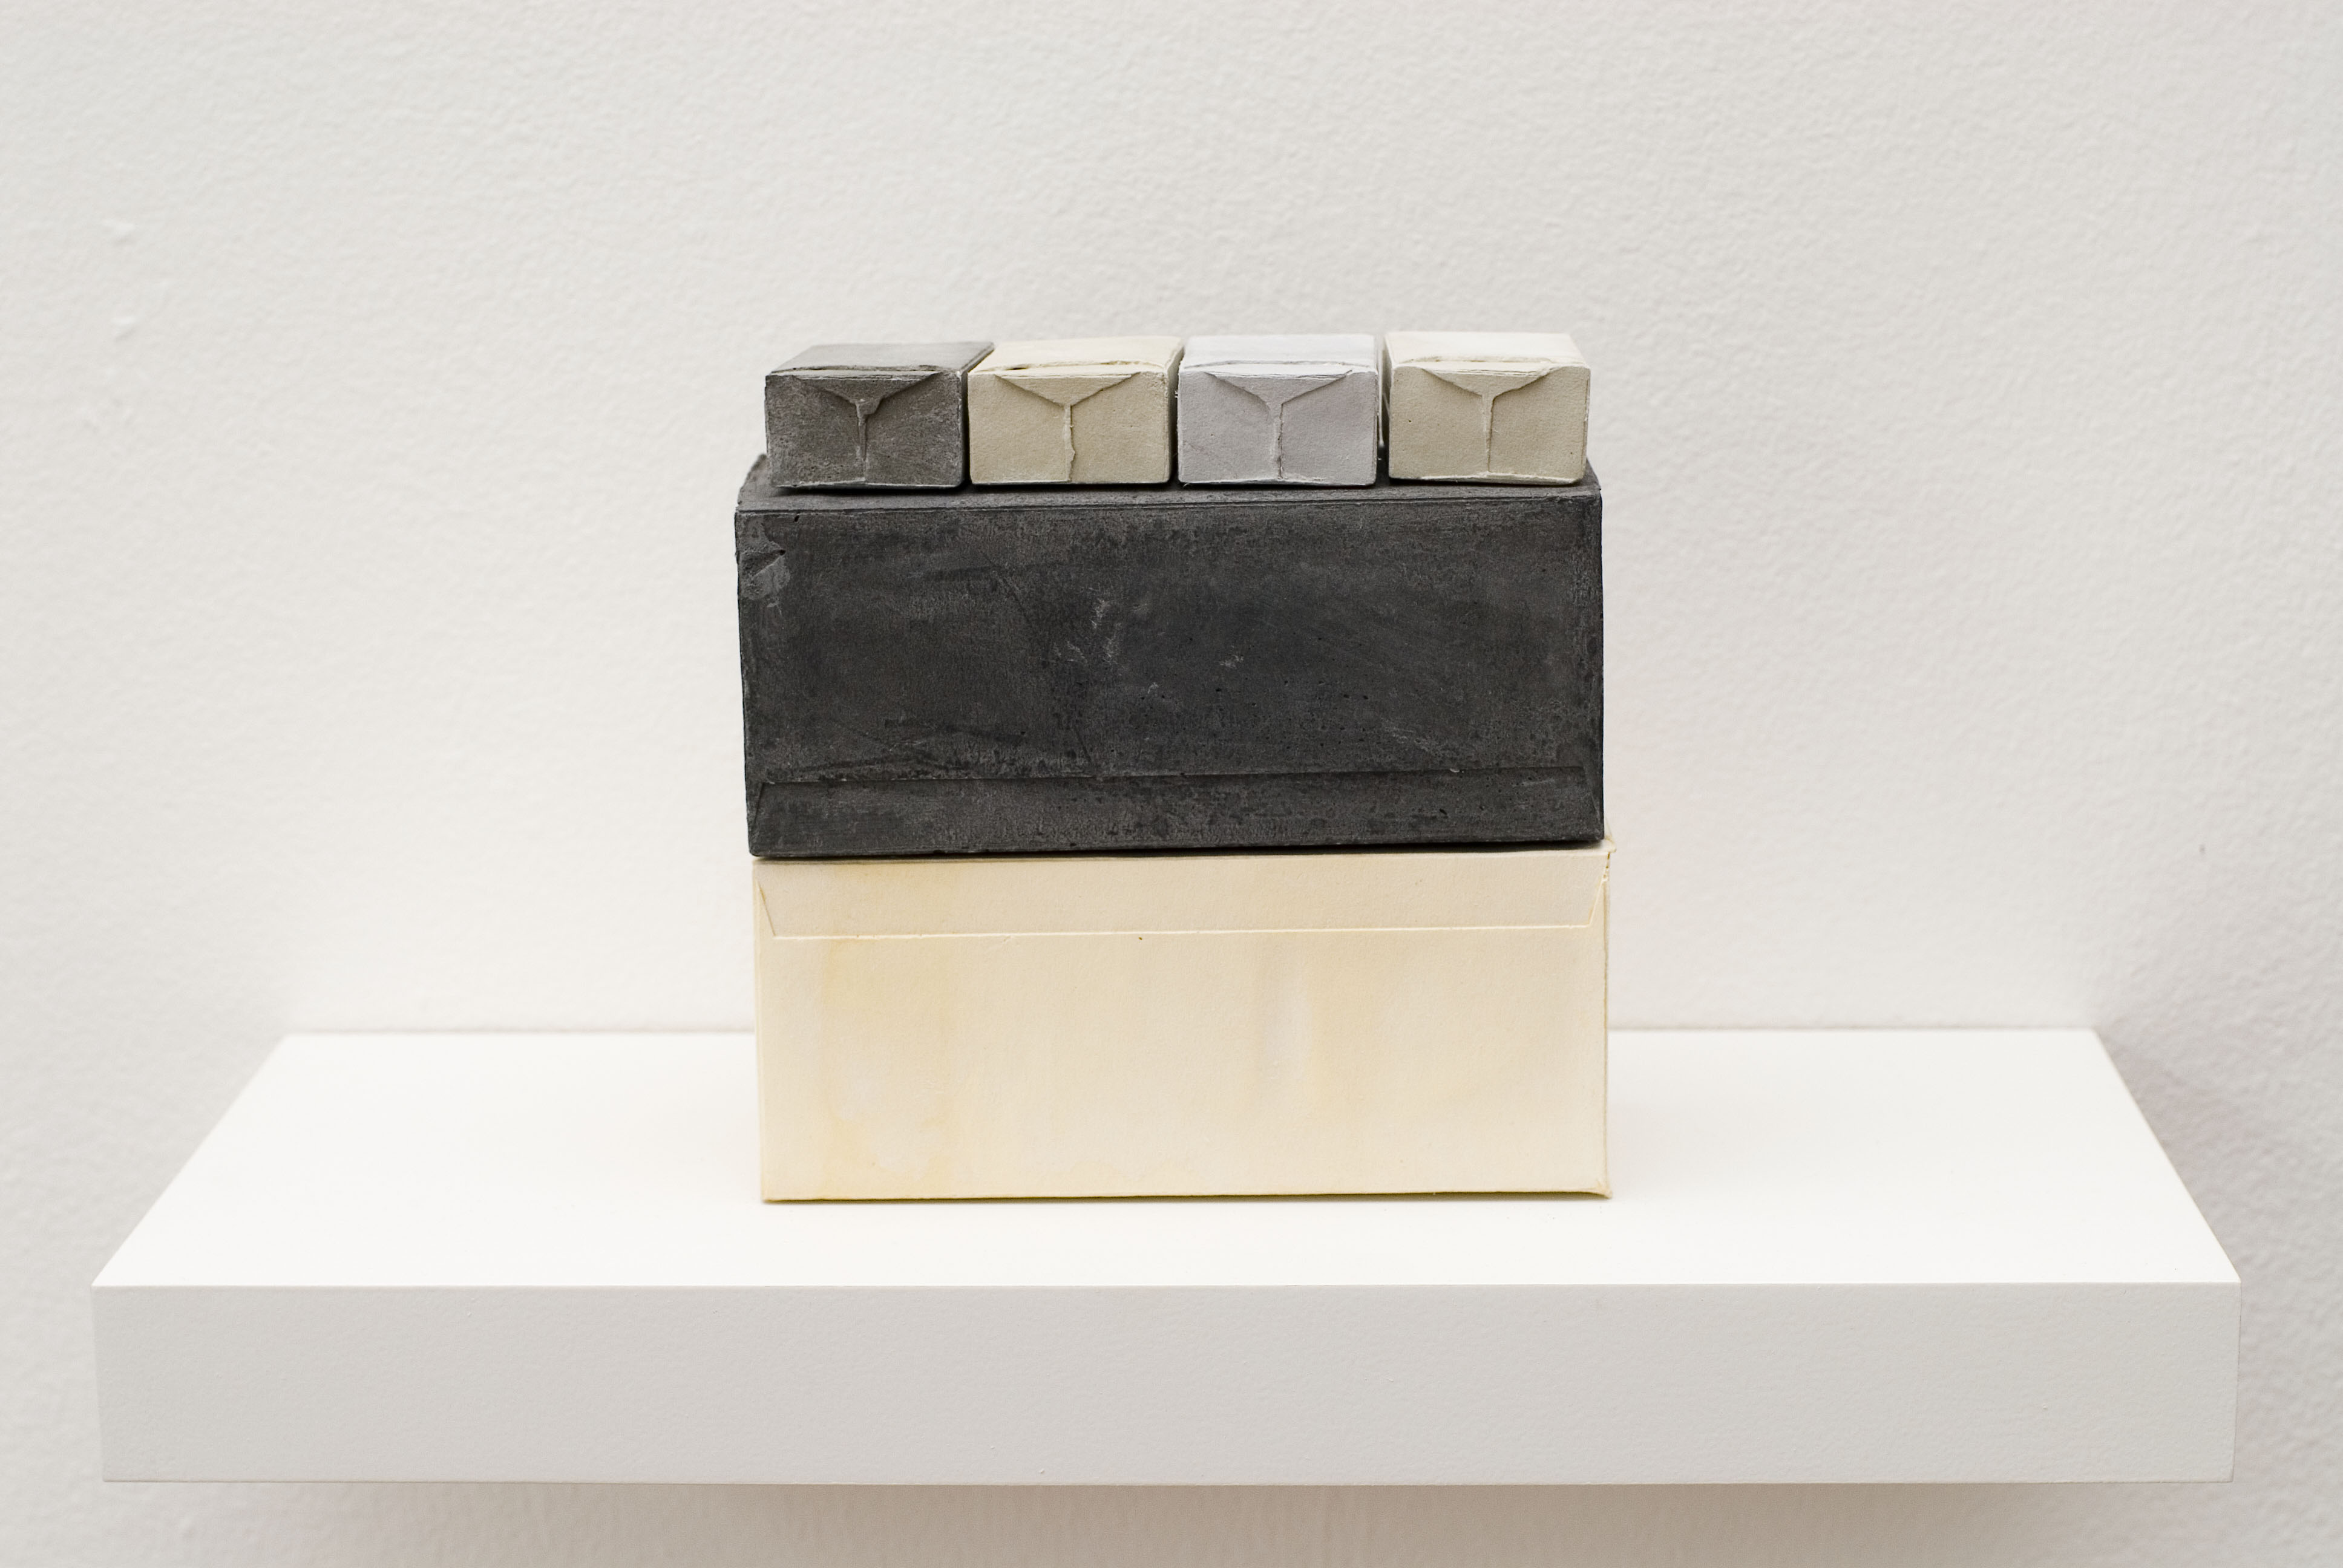 Rachel Whiteread  Model IV , 2006  Gesso, legno e alluminio (1 scaffale, 6 unità)/Plaster, wood and aluminium (1 shelf, 6 units) 20.5 x 40 x 20 cm Courtesy Galleria Lorcan O'Neill Roma